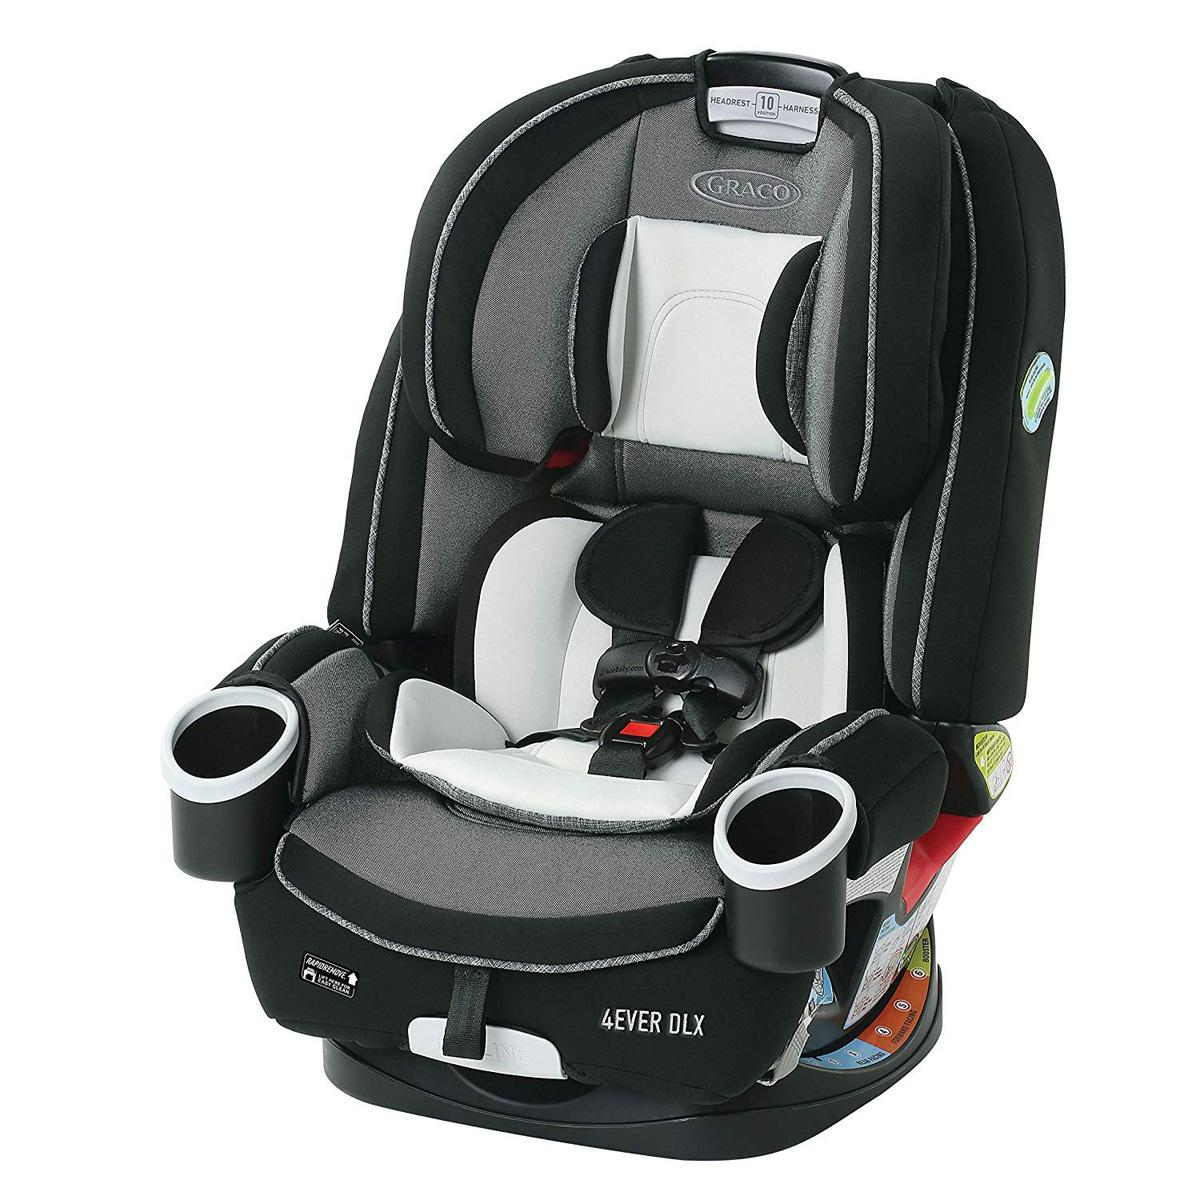 Graco 4Ever DLX 4-in-1 Convertible Car Seat for $199.99 Shipped